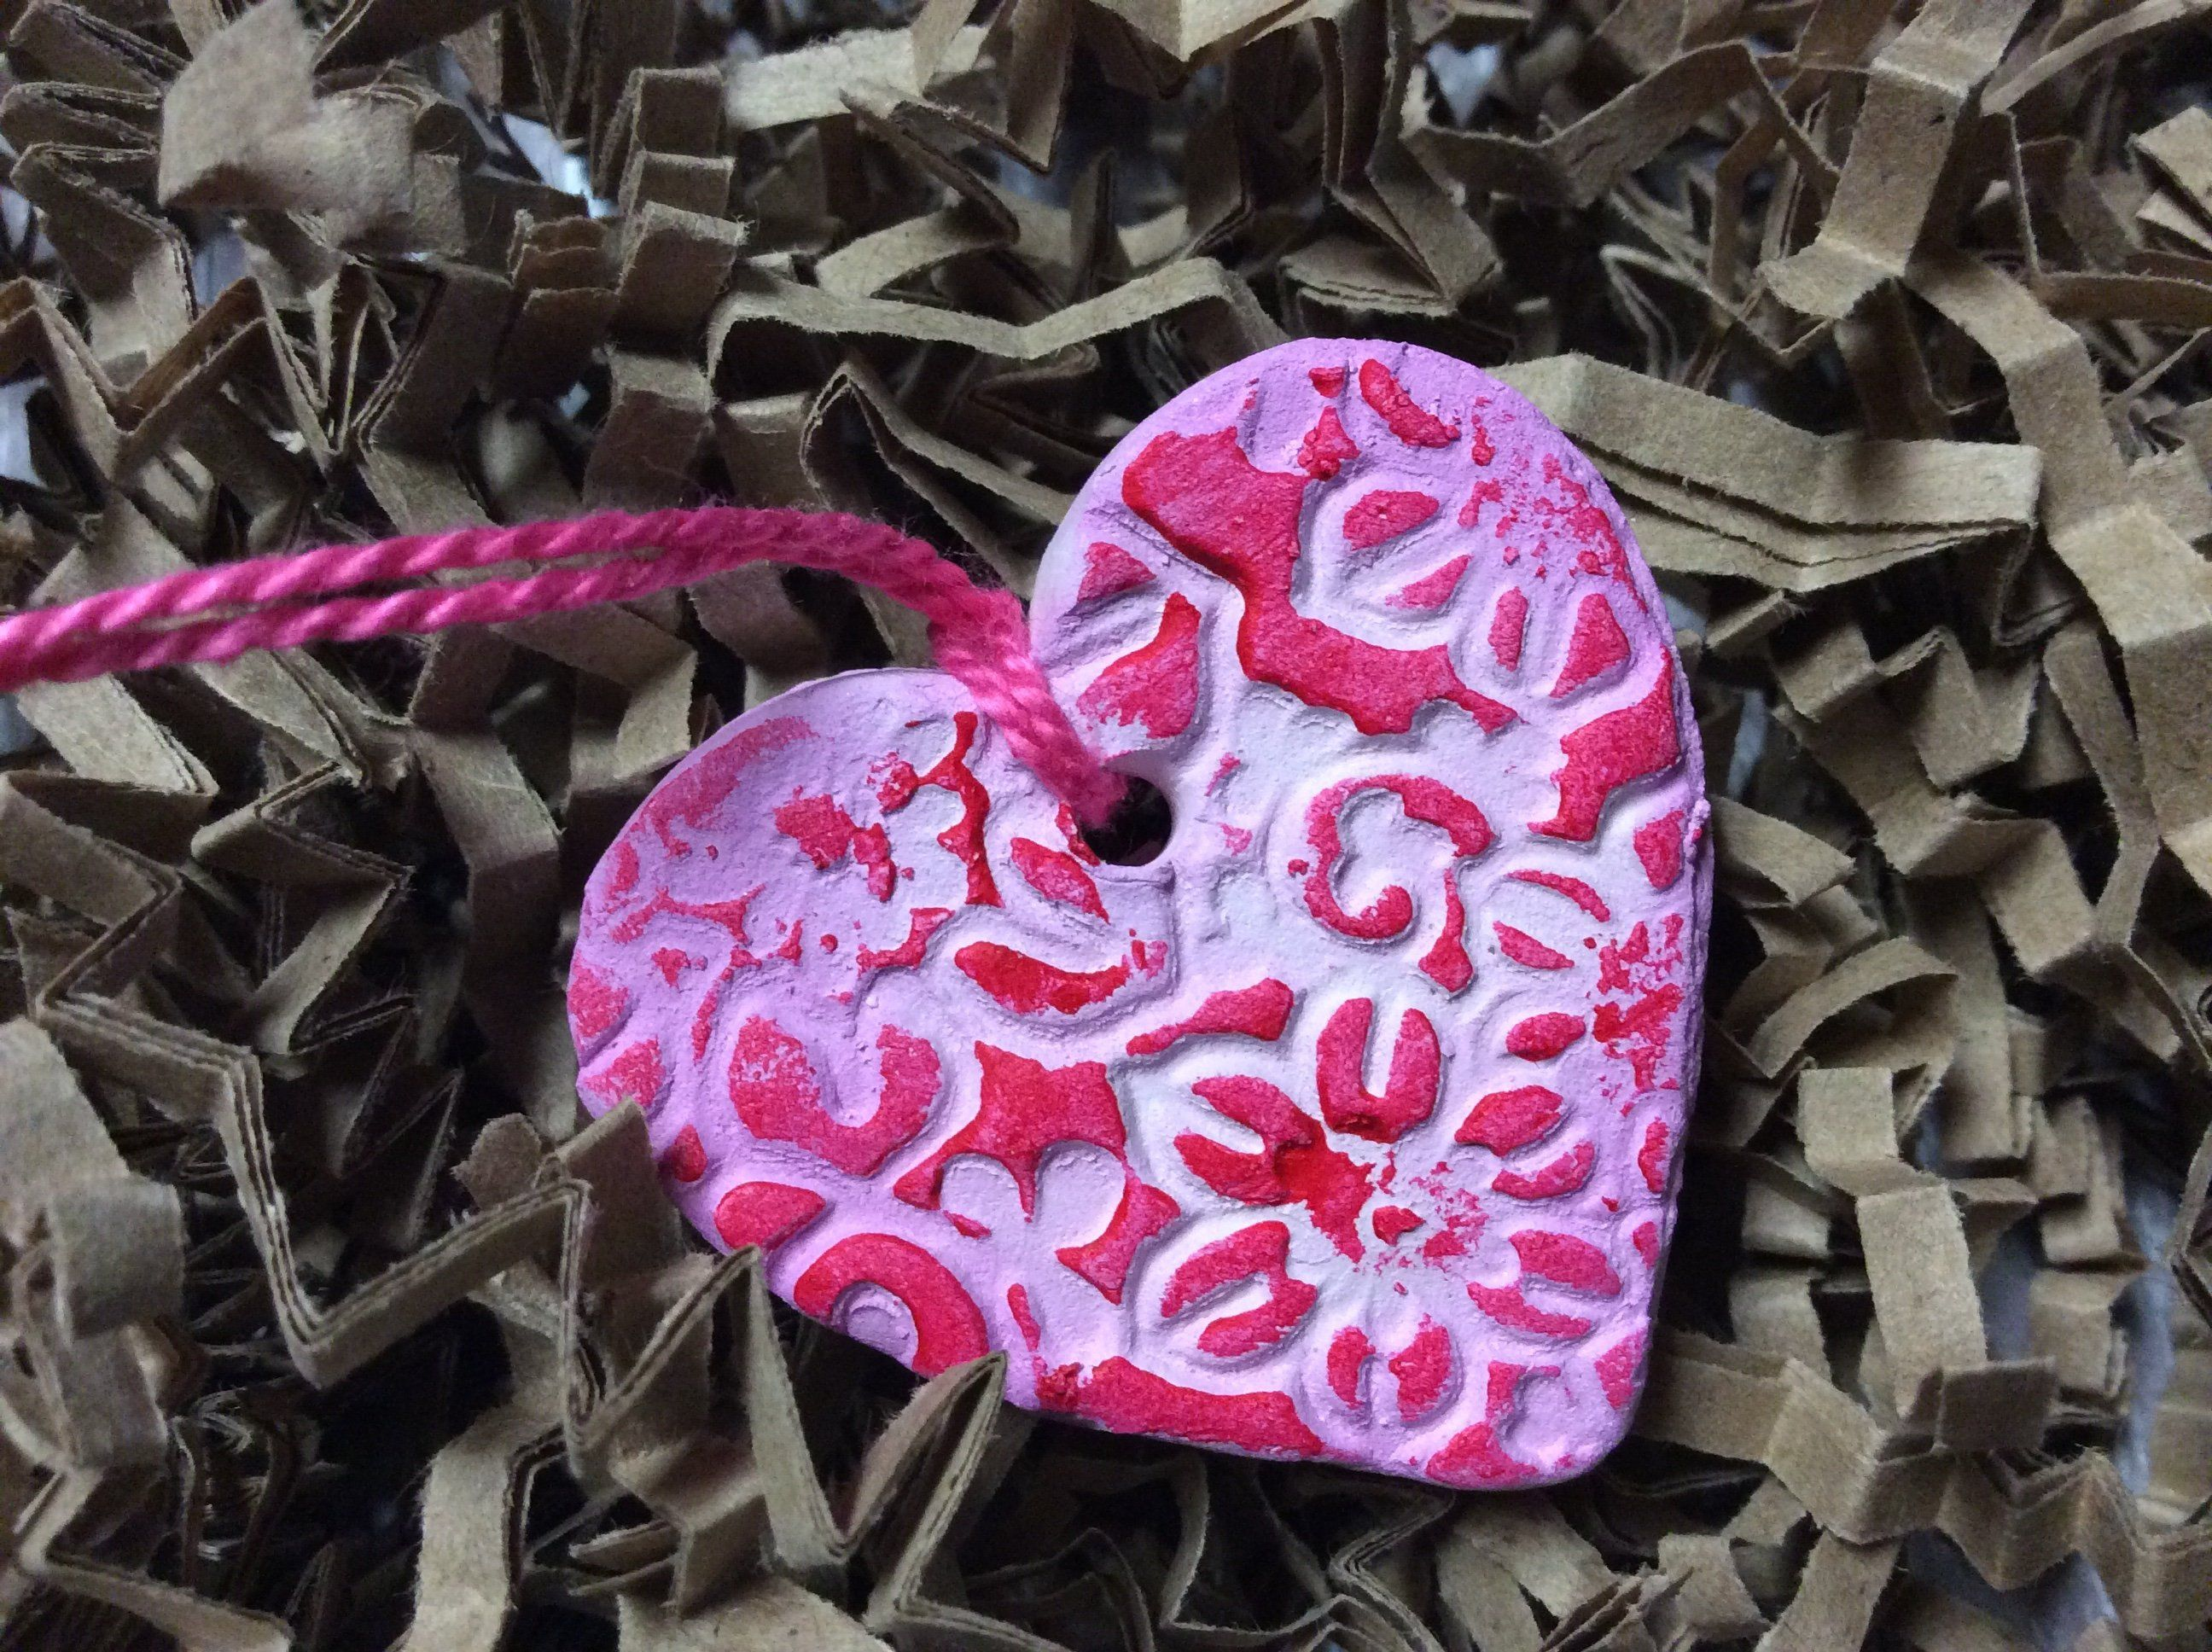 Pink Handmade Ceramic Clay Heart Ornament Hand Painted Heart Hanging Decoration Clay Heart Package Tags Hostess Gift Bridal Party Hand Painted Ornaments Heart Ornament Handmade